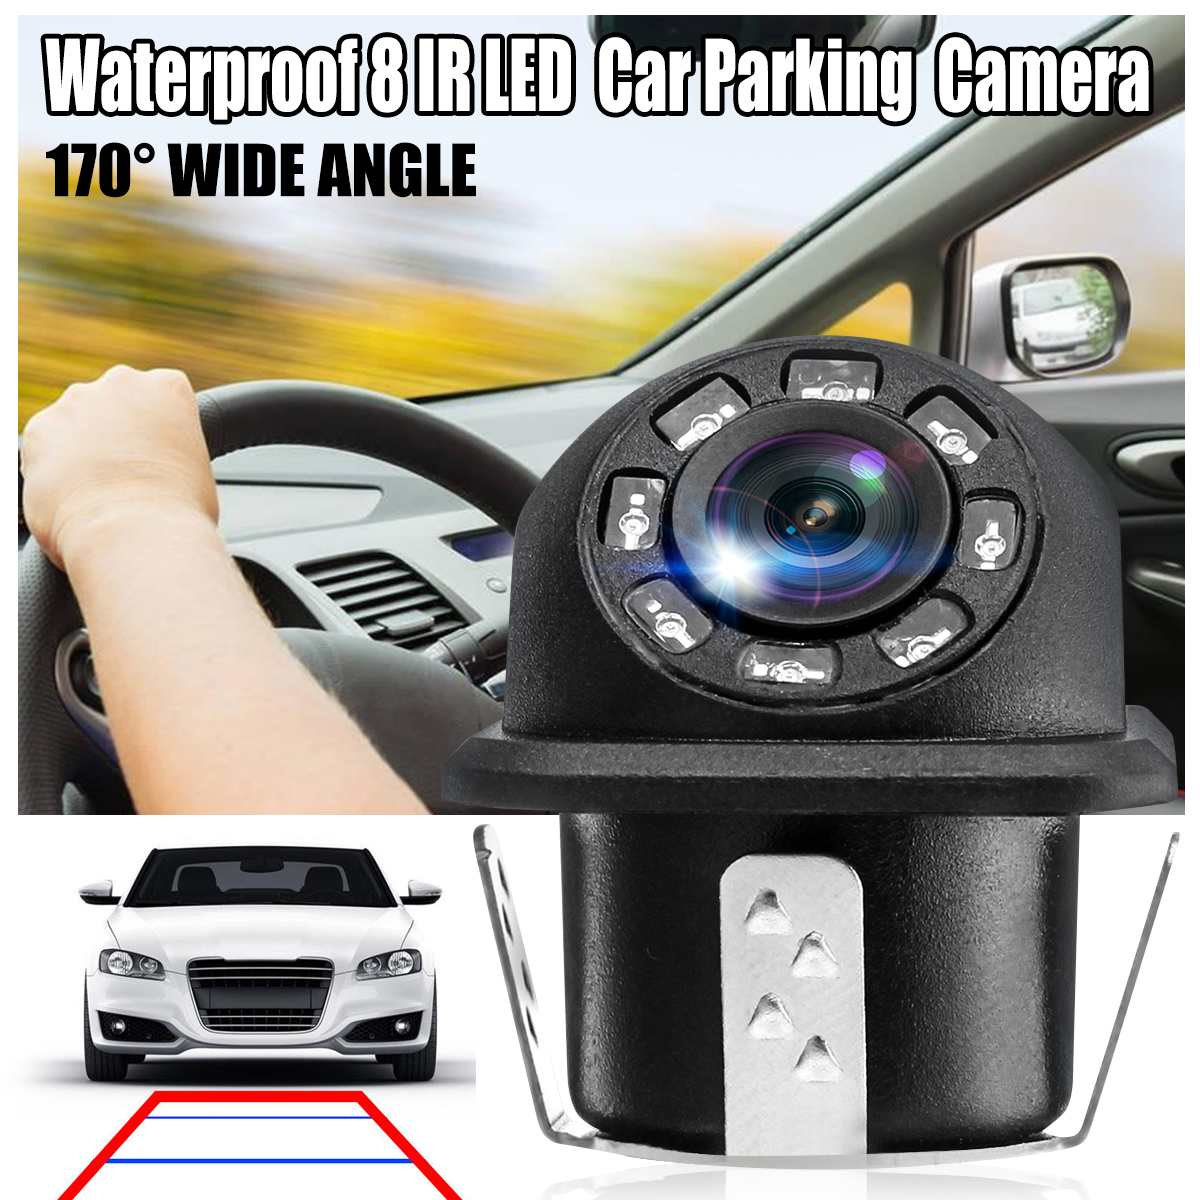 Car Auto License Plate Mount Rear View Backup Camera Waterproof 170 Degree Wide Angle With IR LED Night Vision